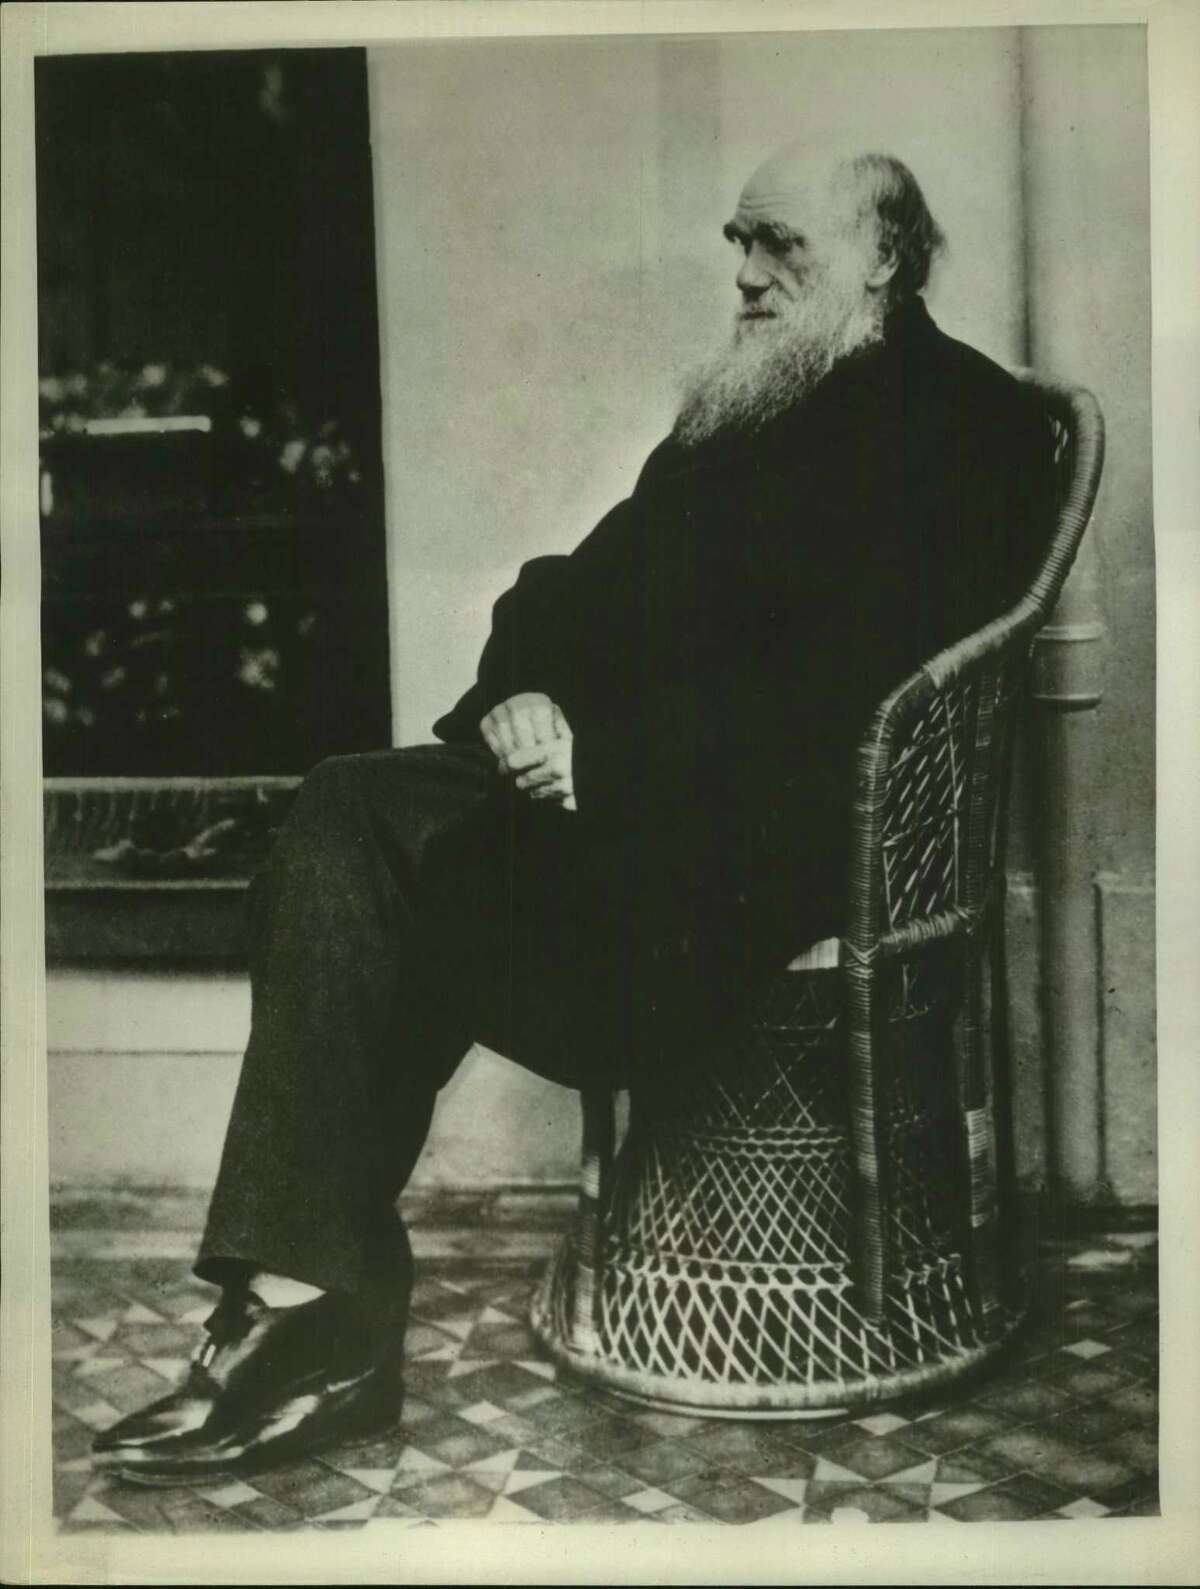 """Charles Darwin's """"The Origin of Species,"""" published about 100 years ago, expounded the theory of evolution. Creationists continue to insist it isn't proven, final science."""